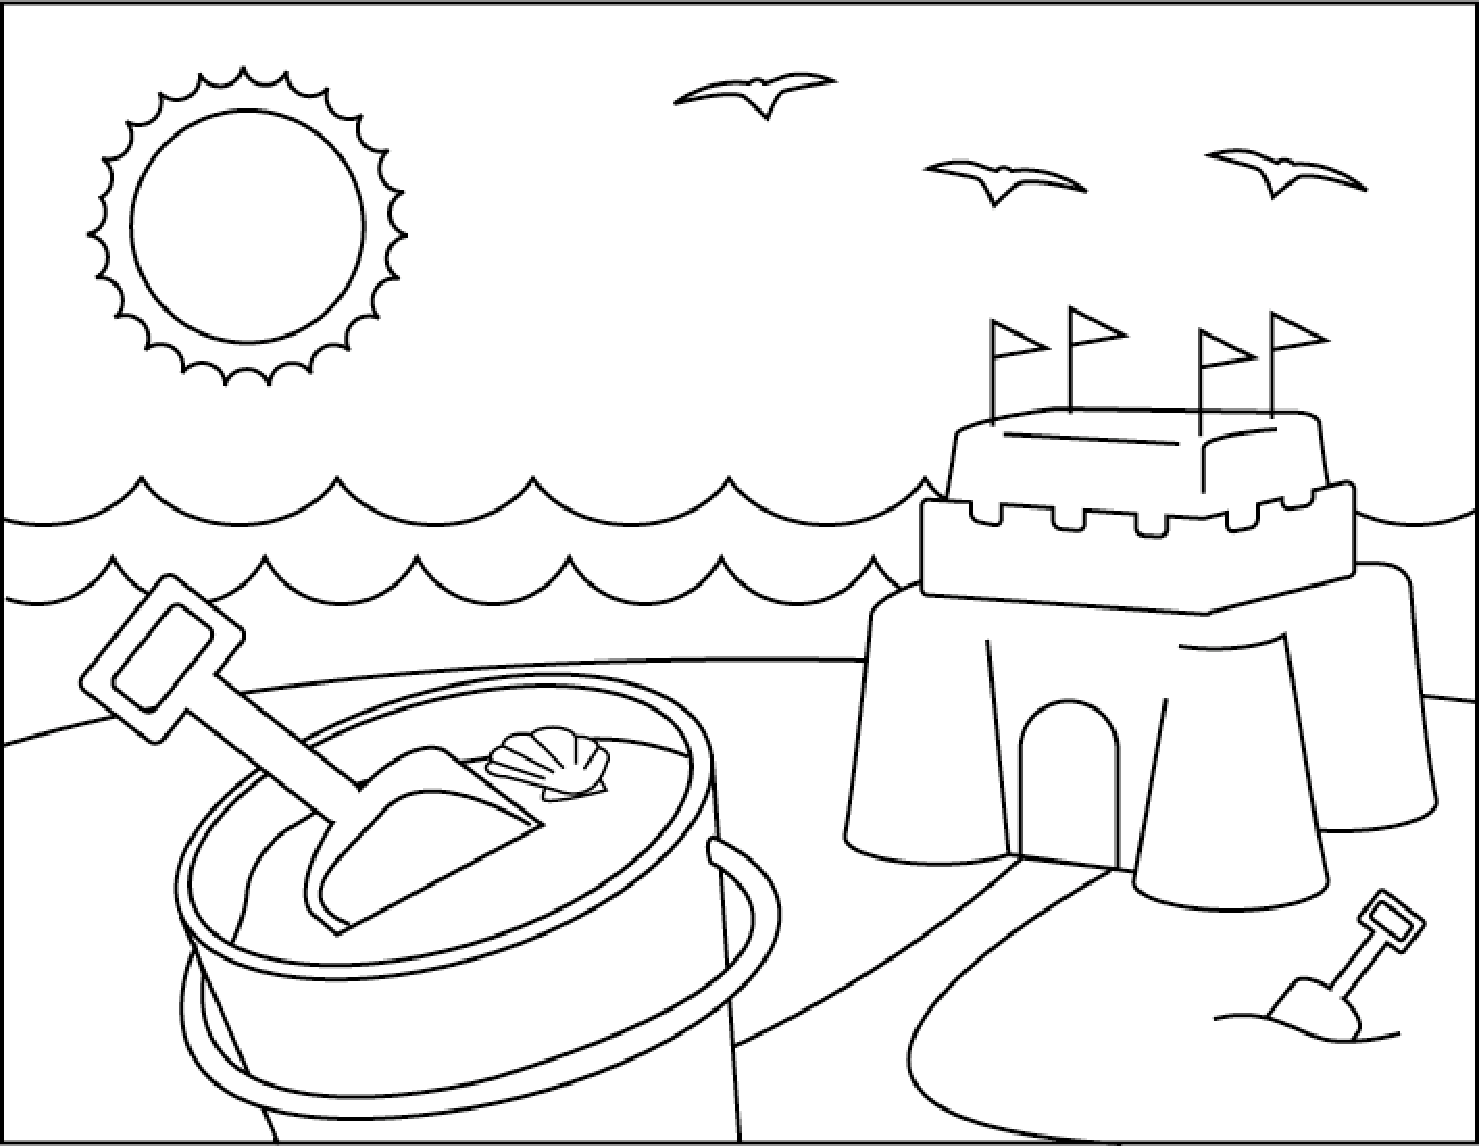 printable sand castle coloring page sand castle on beach summer coloring picture for kids printable page sand castle coloring